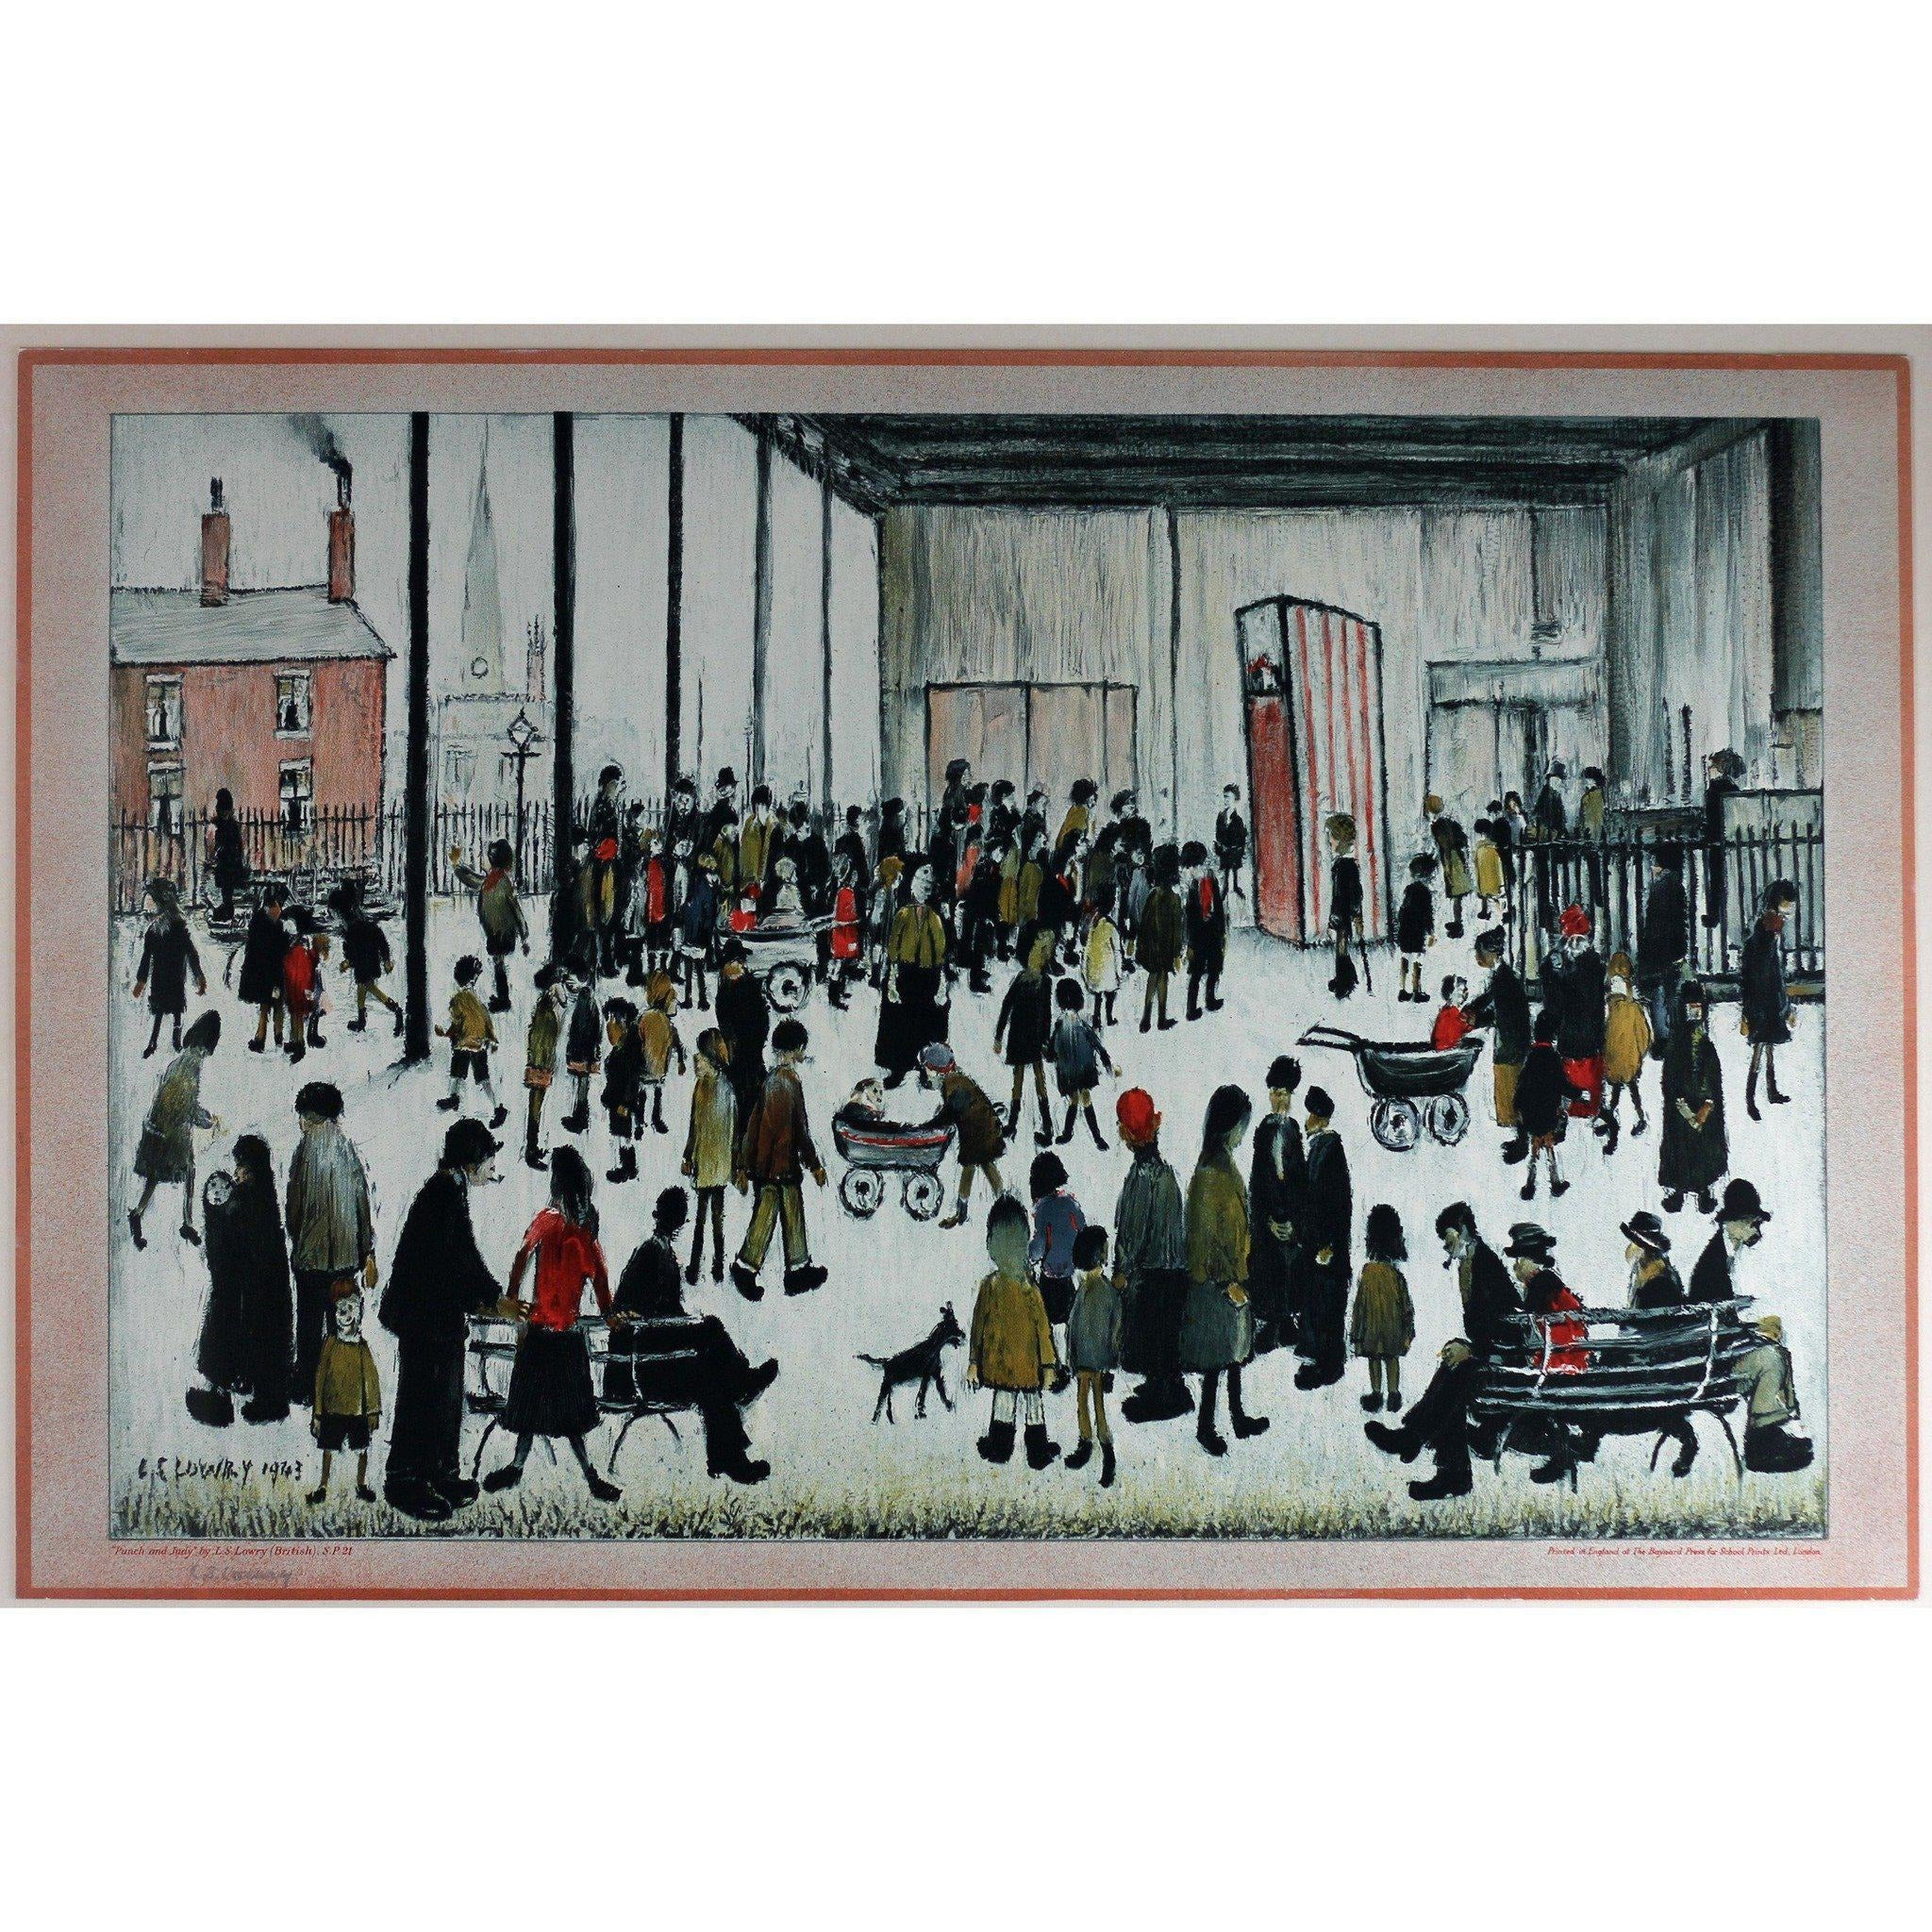 L S Lowry Signed Ltd Ed Lithograph - Punch & Judy